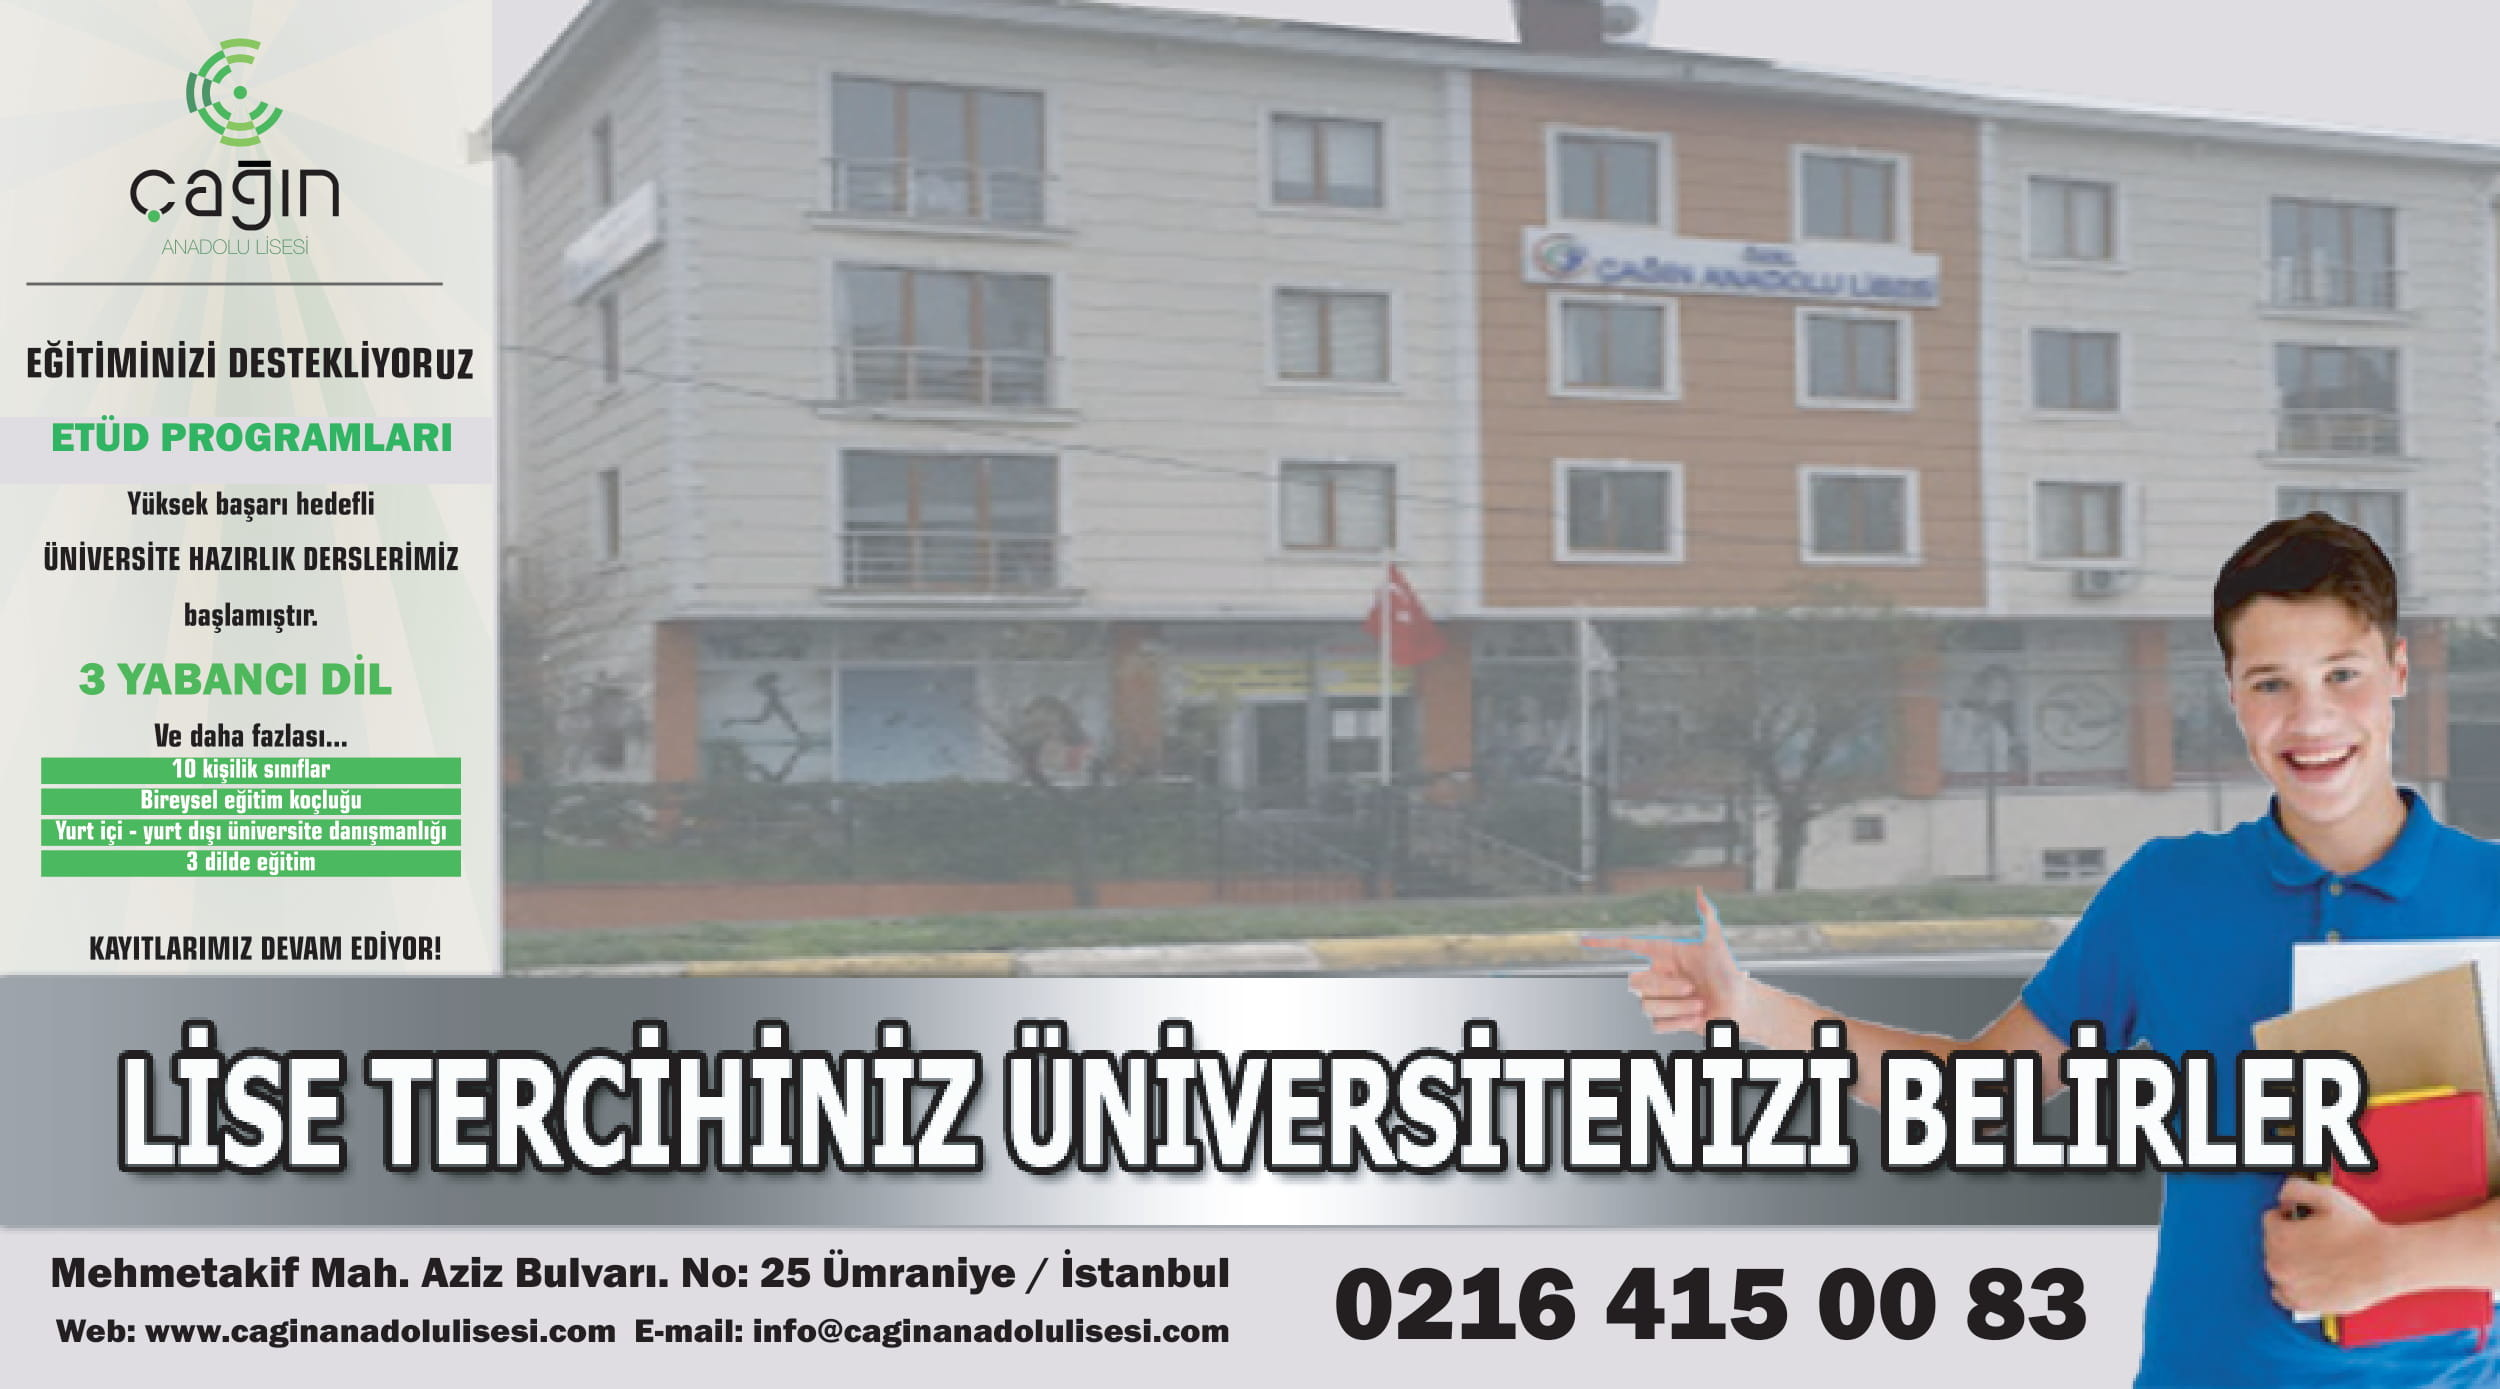 caginanadolulisesi.com